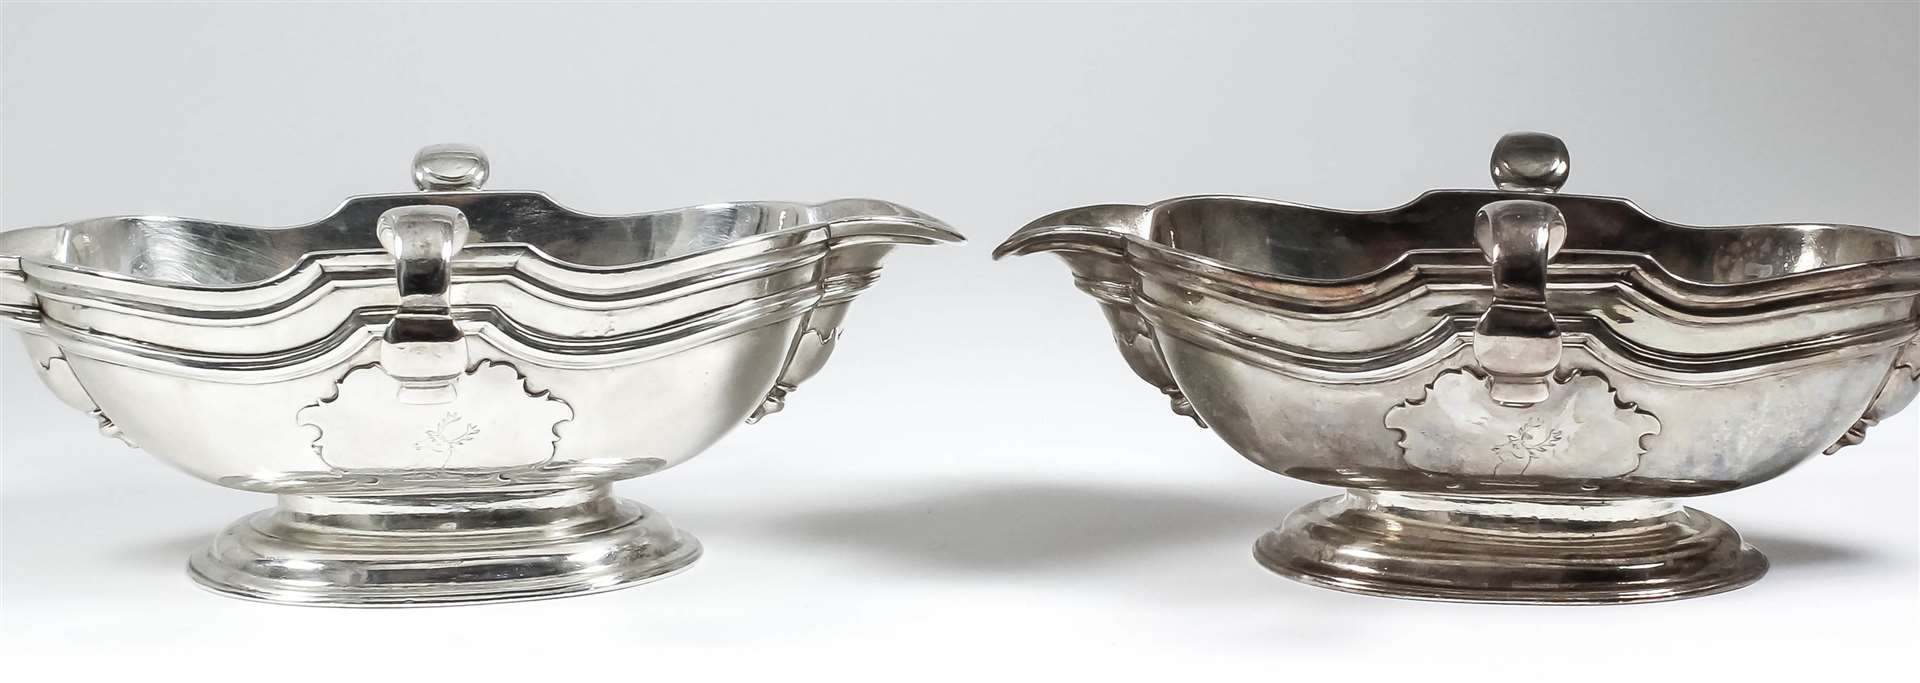 A pair of George I Irish silver sauce boats by Mathew Walker sold for £76,000